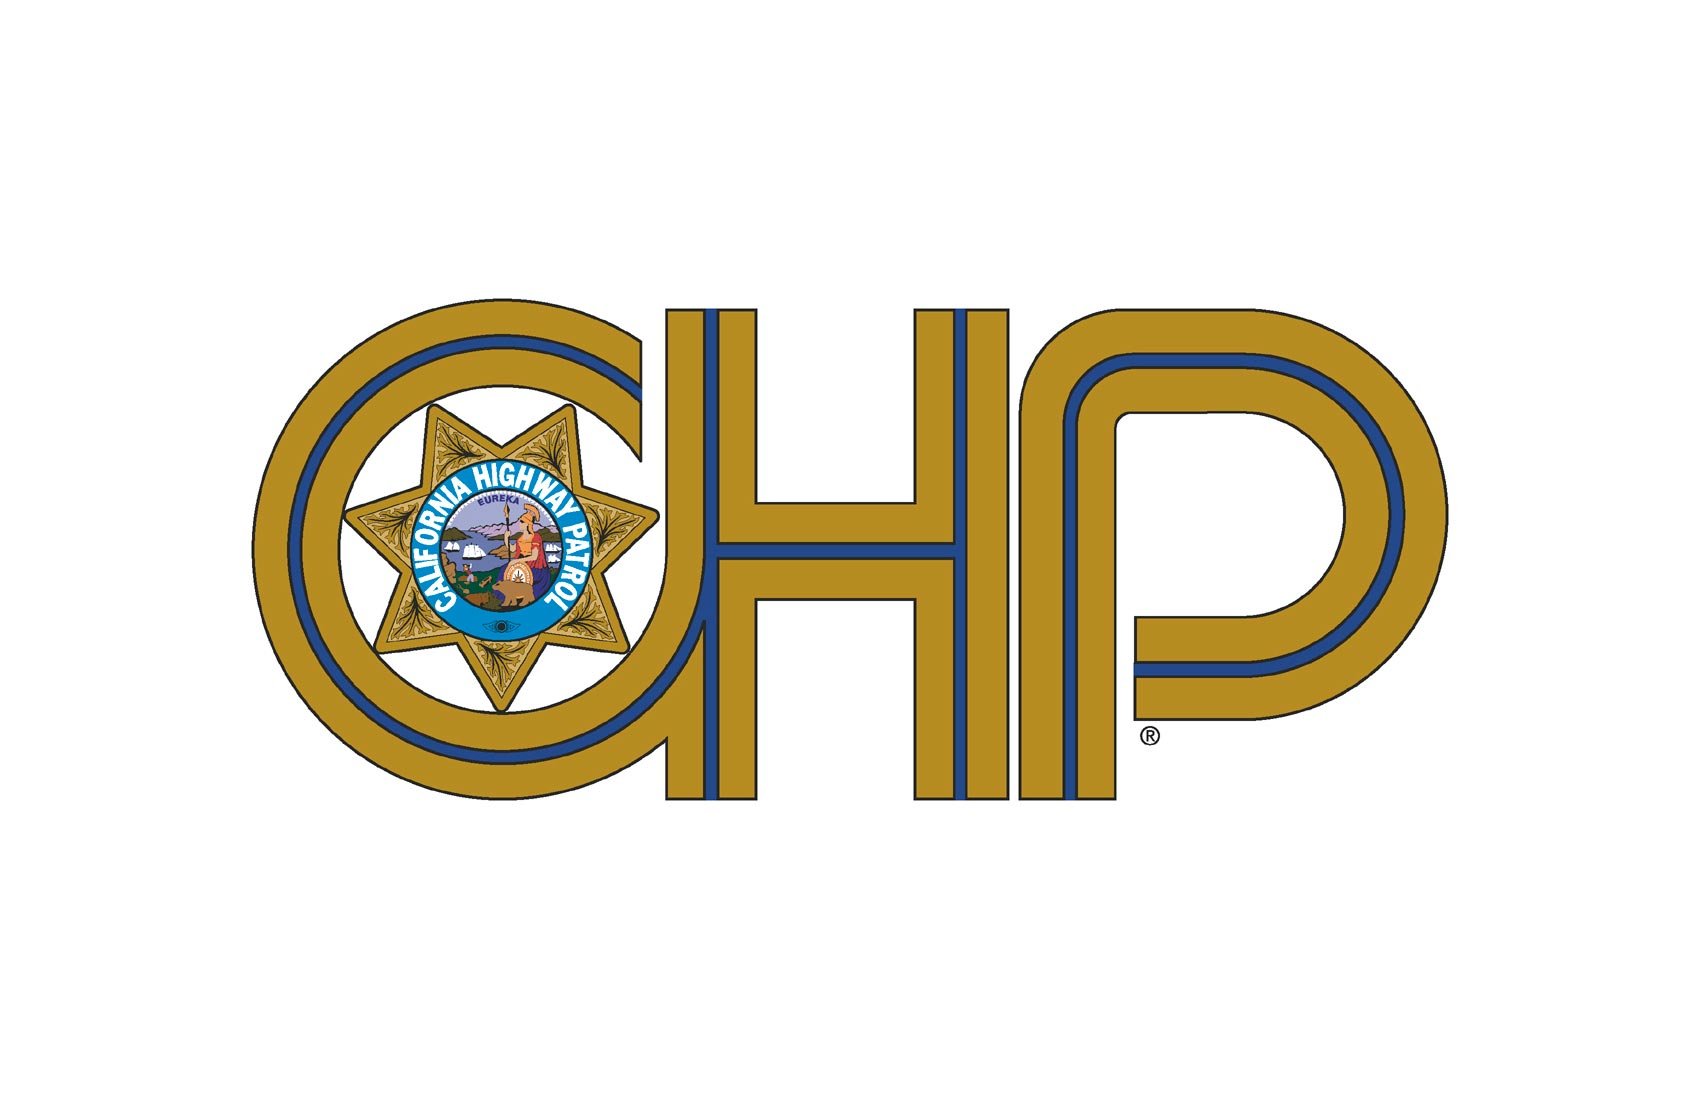 chp drops lane splitting guidelines from website asphalt. Black Bedroom Furniture Sets. Home Design Ideas